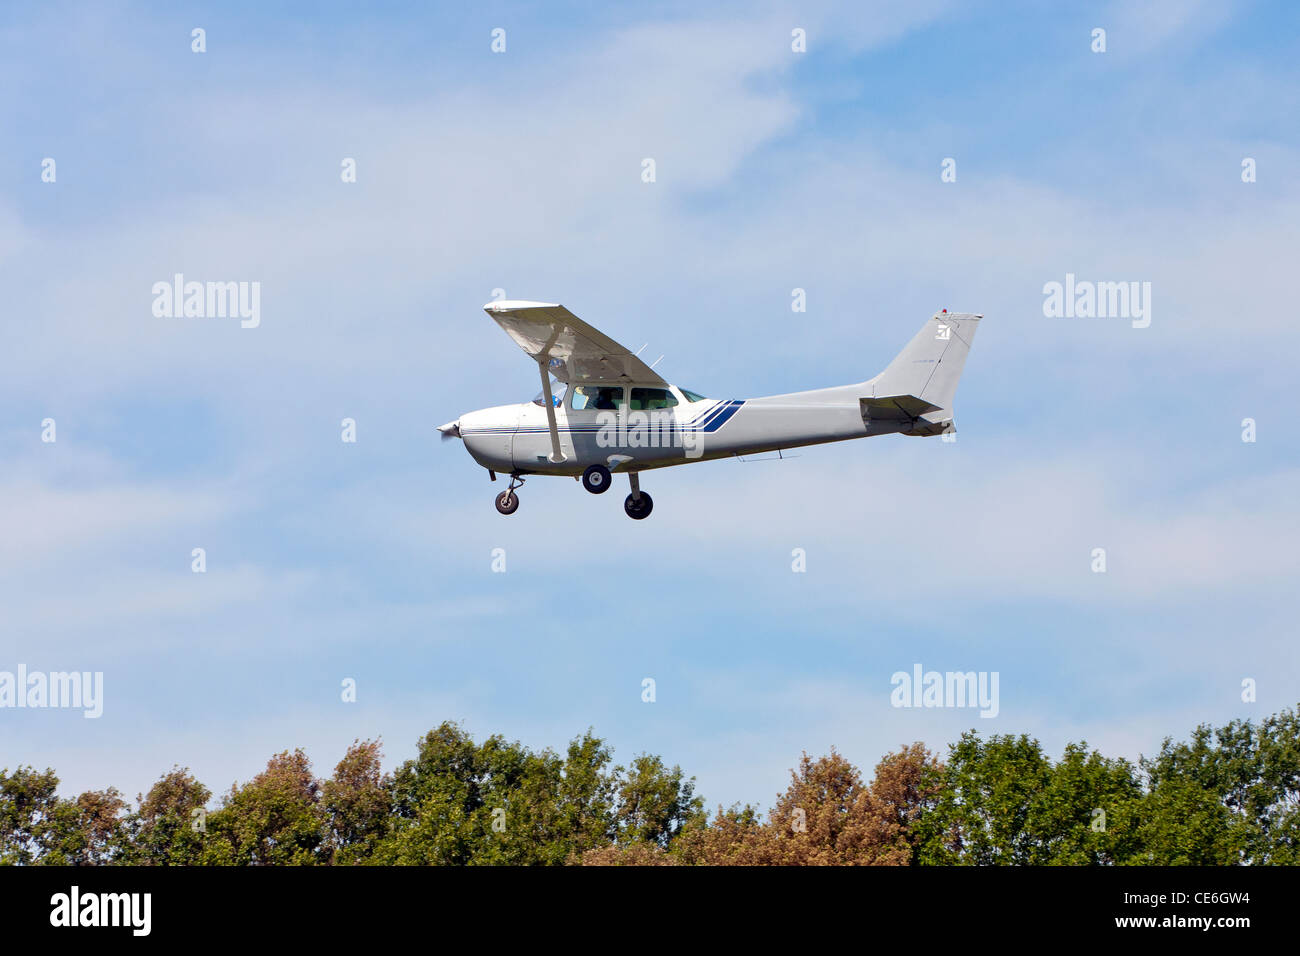 Cessna Plane A Cessna Plane In Flight In The Sky Stock Photo 43170880 Alamy